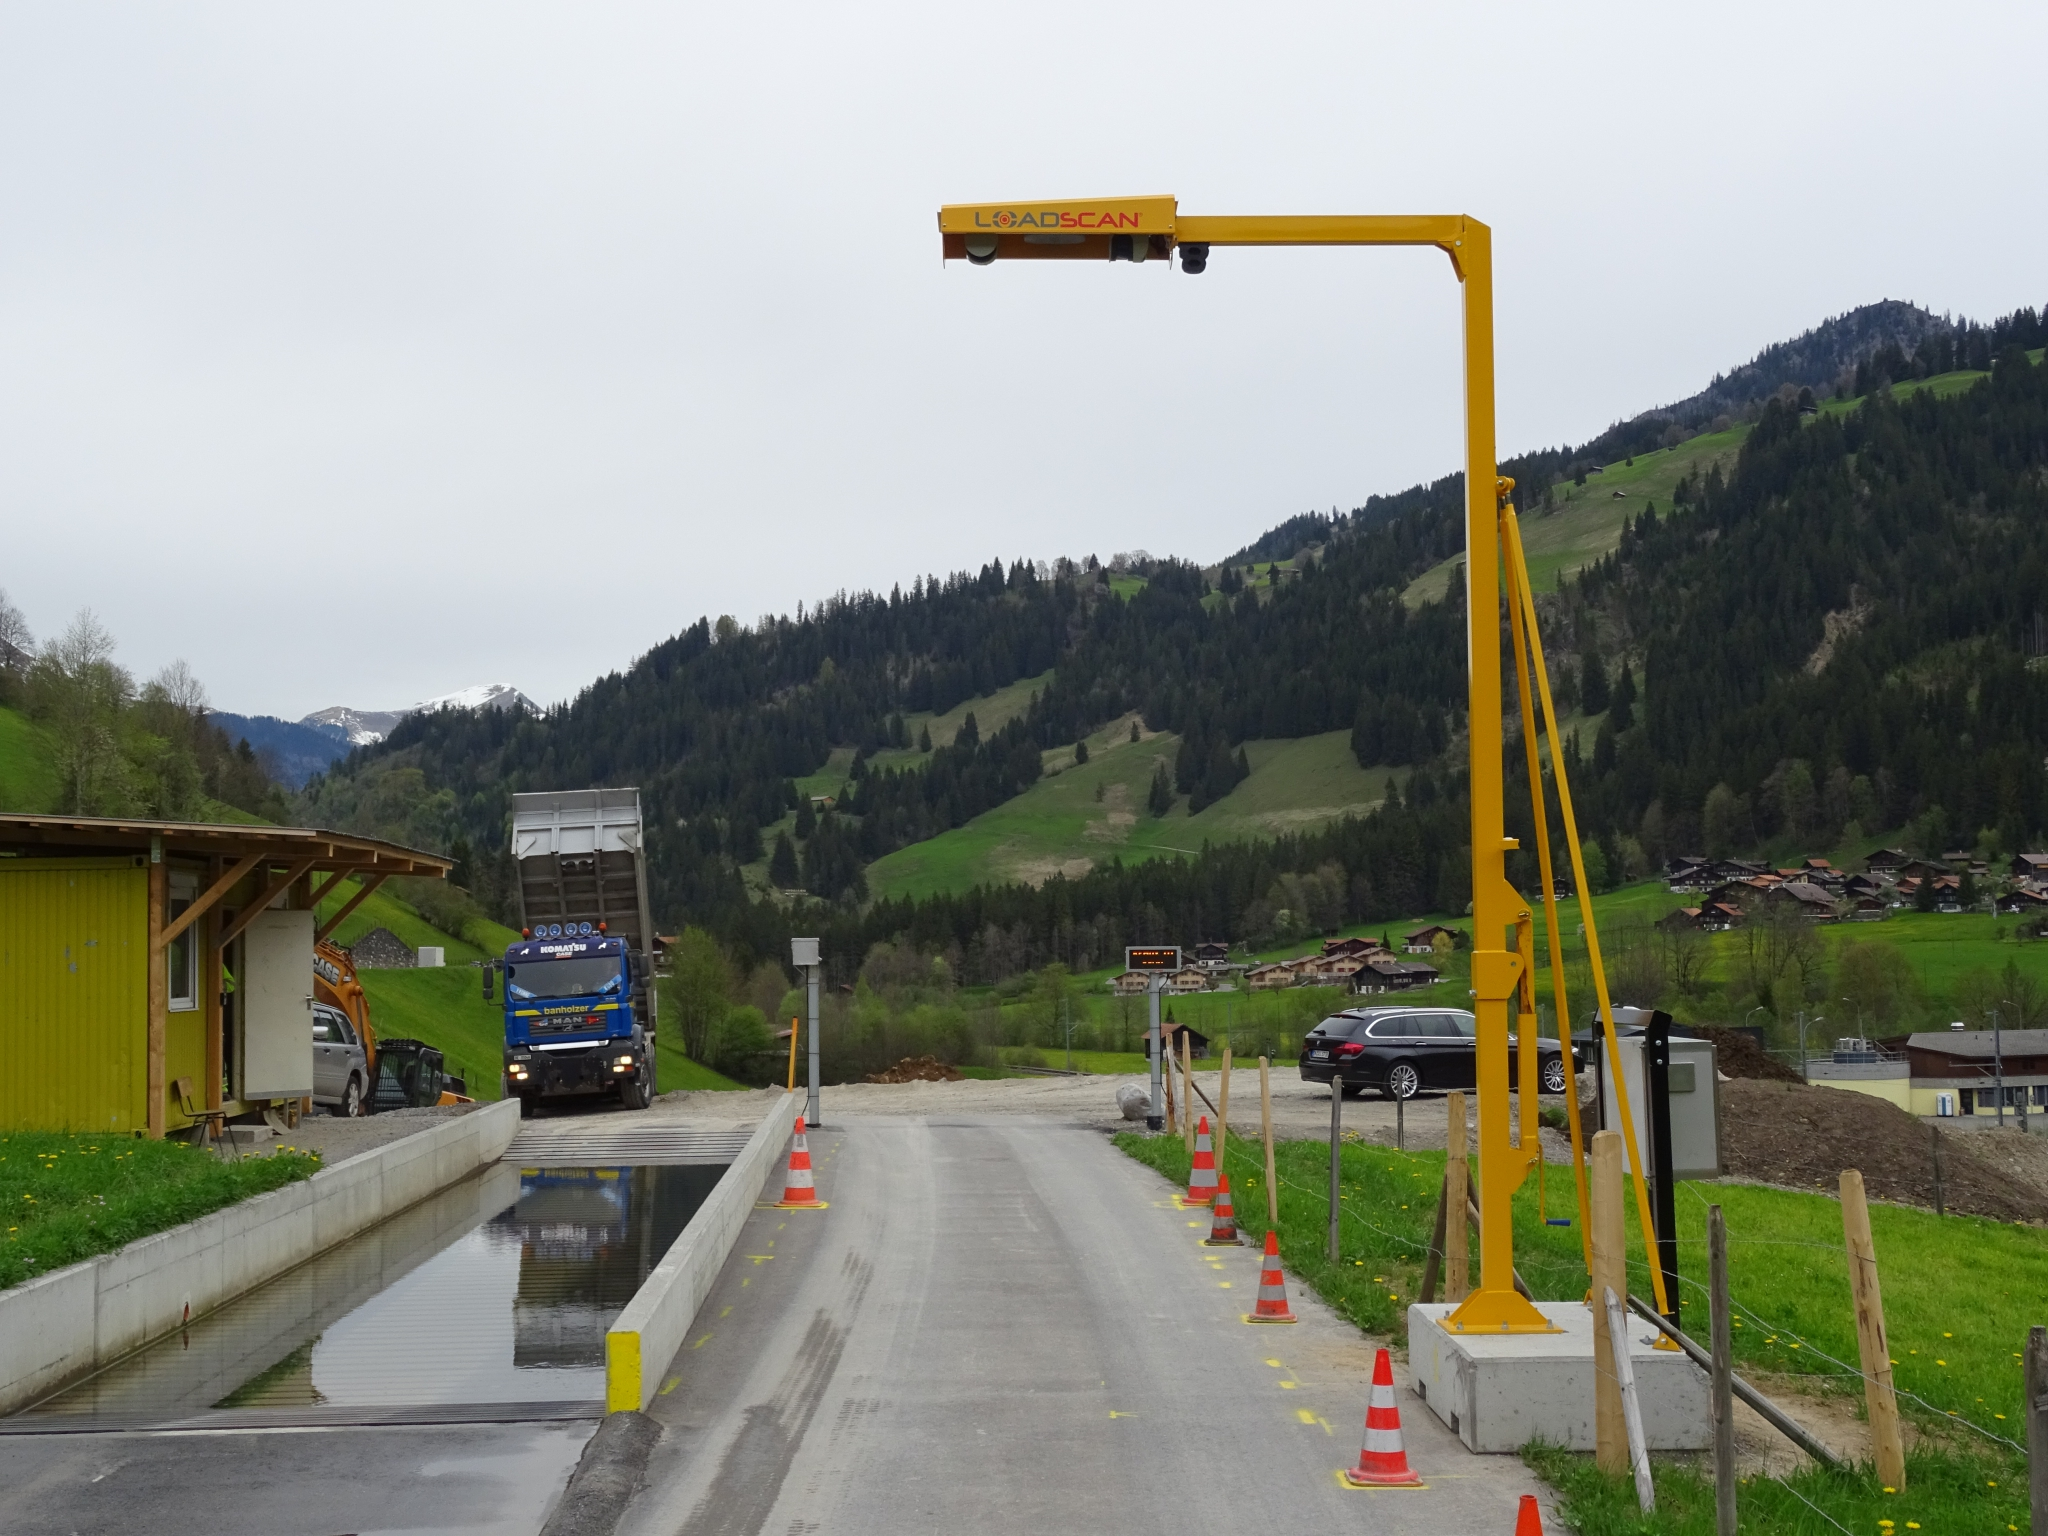 Loadscan LVS-3BMF for Banholzer, Switzerland